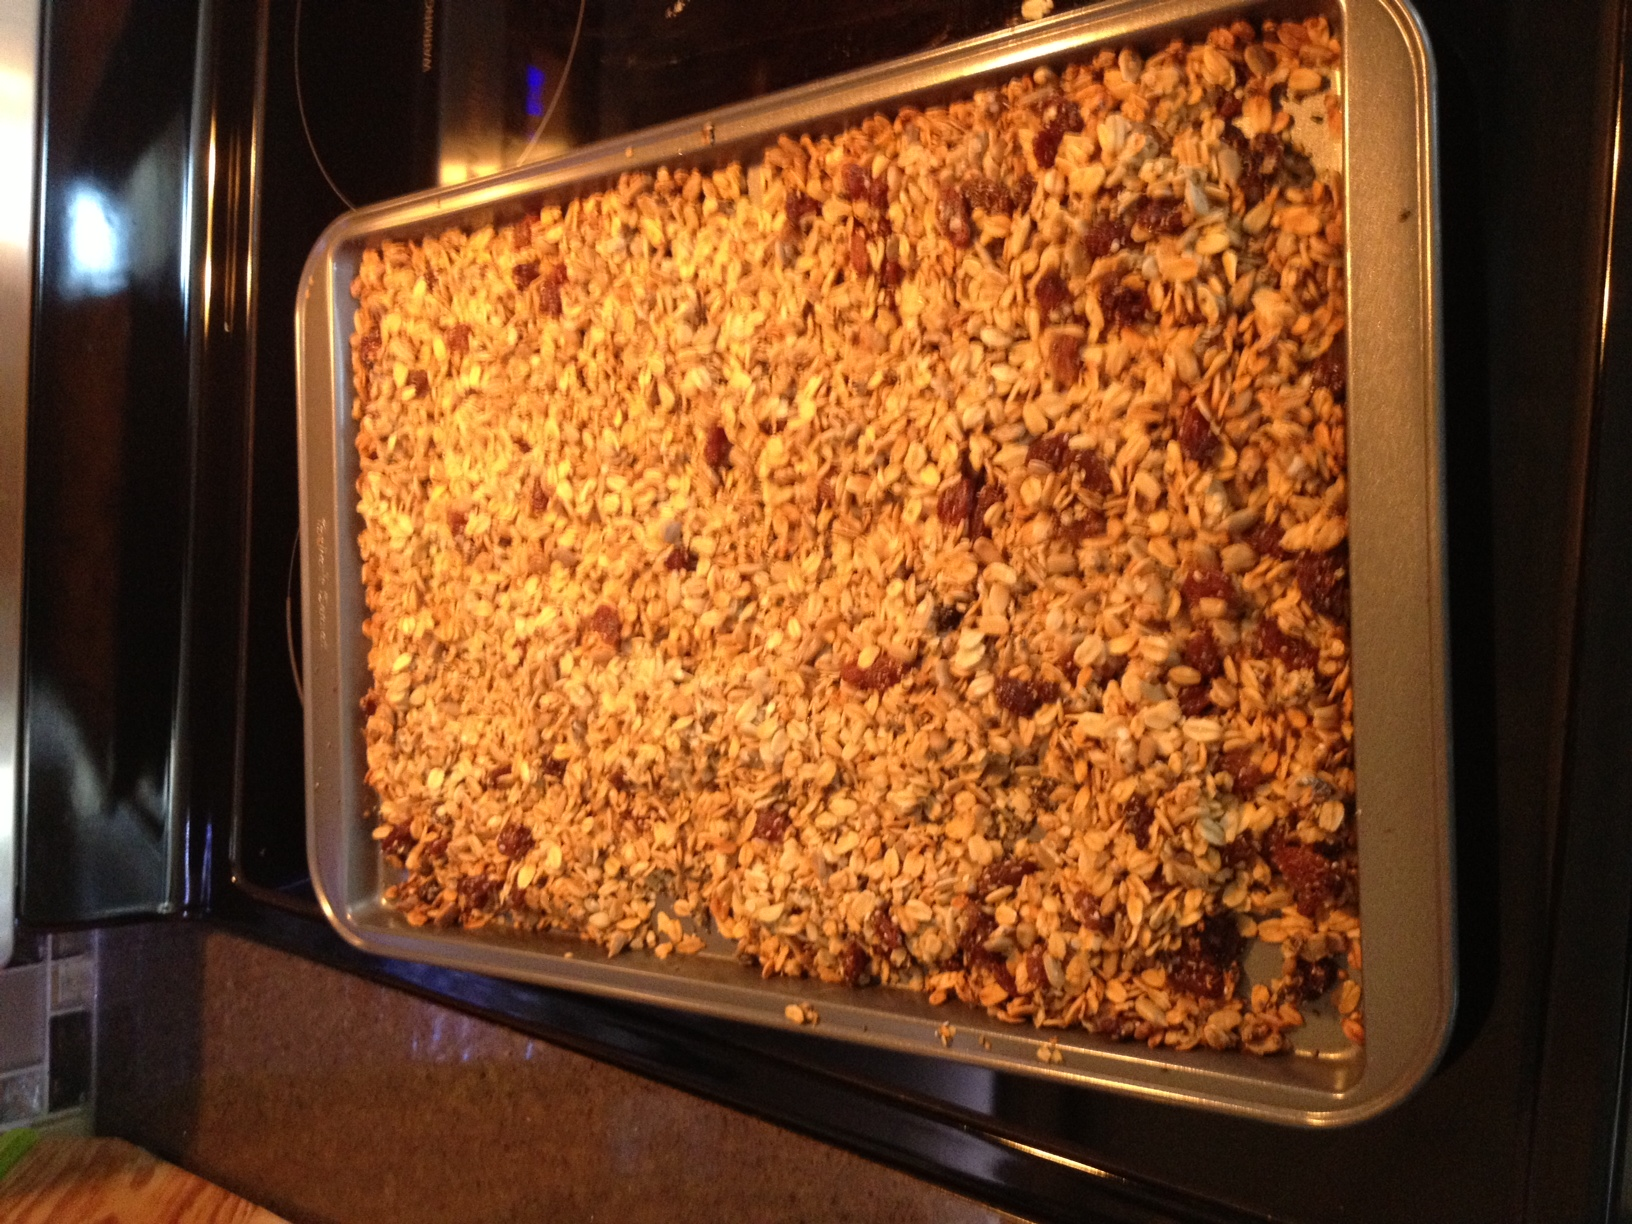 Never make granola on a cookie sheet - that way lies disaster!